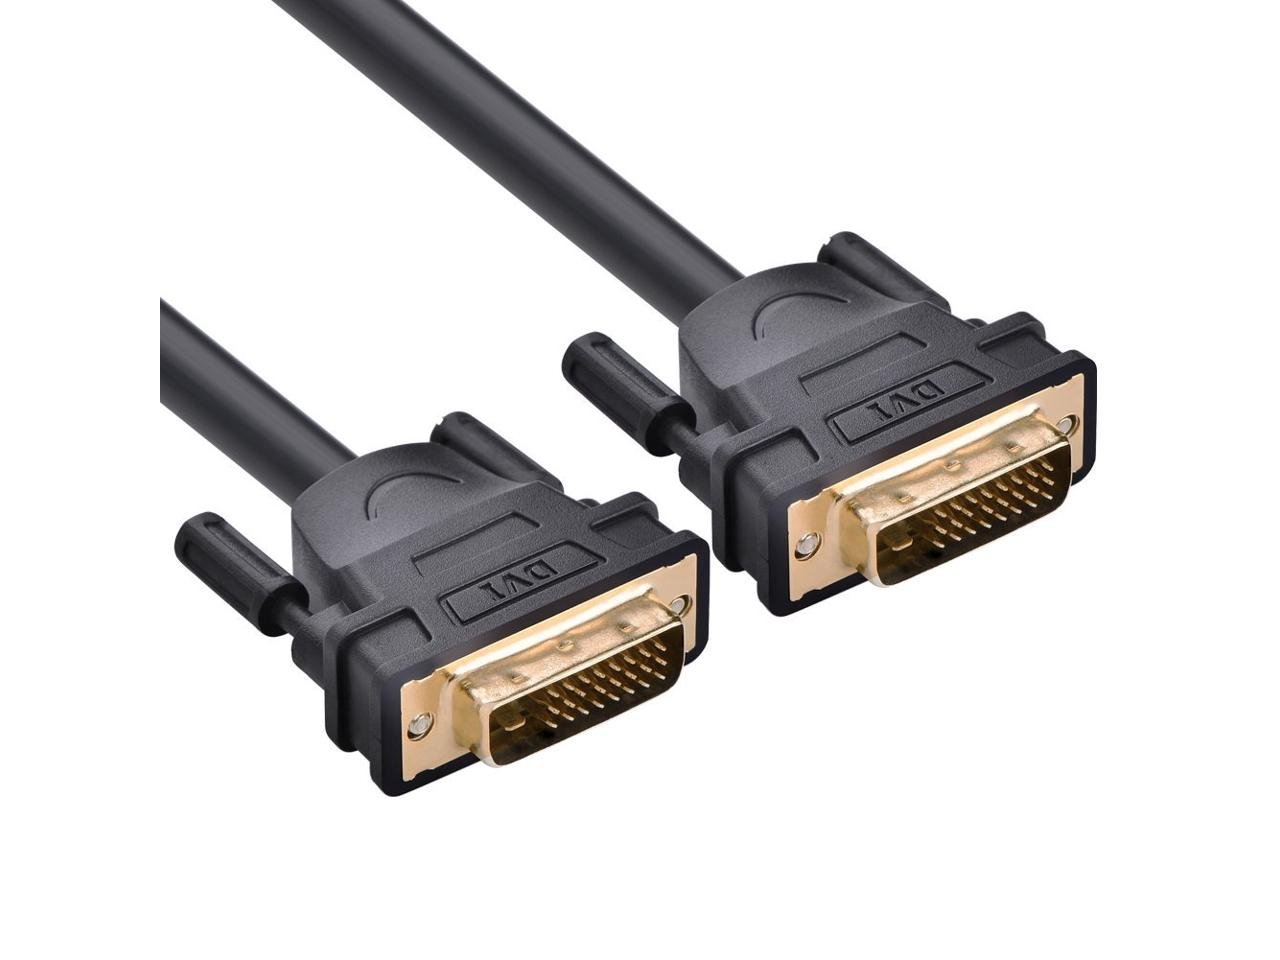 66ft/20m DVI-D 24+1 Extension cable ,DVI-D 24+1 Dual Link Male to Male Digital Video Cable Gold Plated with Ferrite Core Support 2560x1600 for Gaming, DVD, Laptop, HDTV and Projector